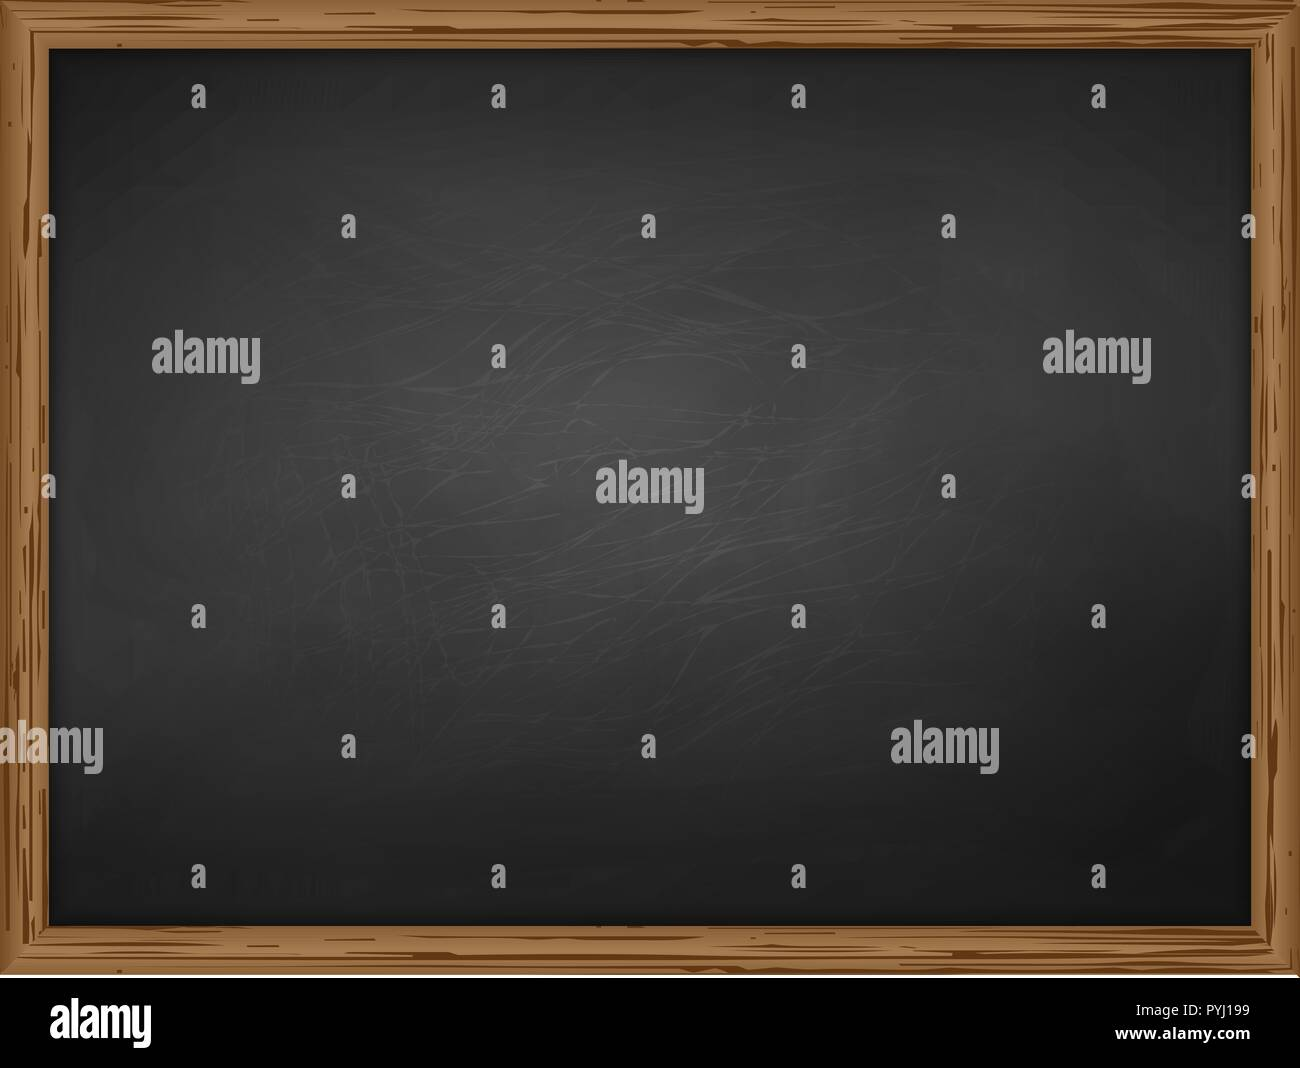 School Chalkboard Background Texture With Frame Vector Template For Your Design